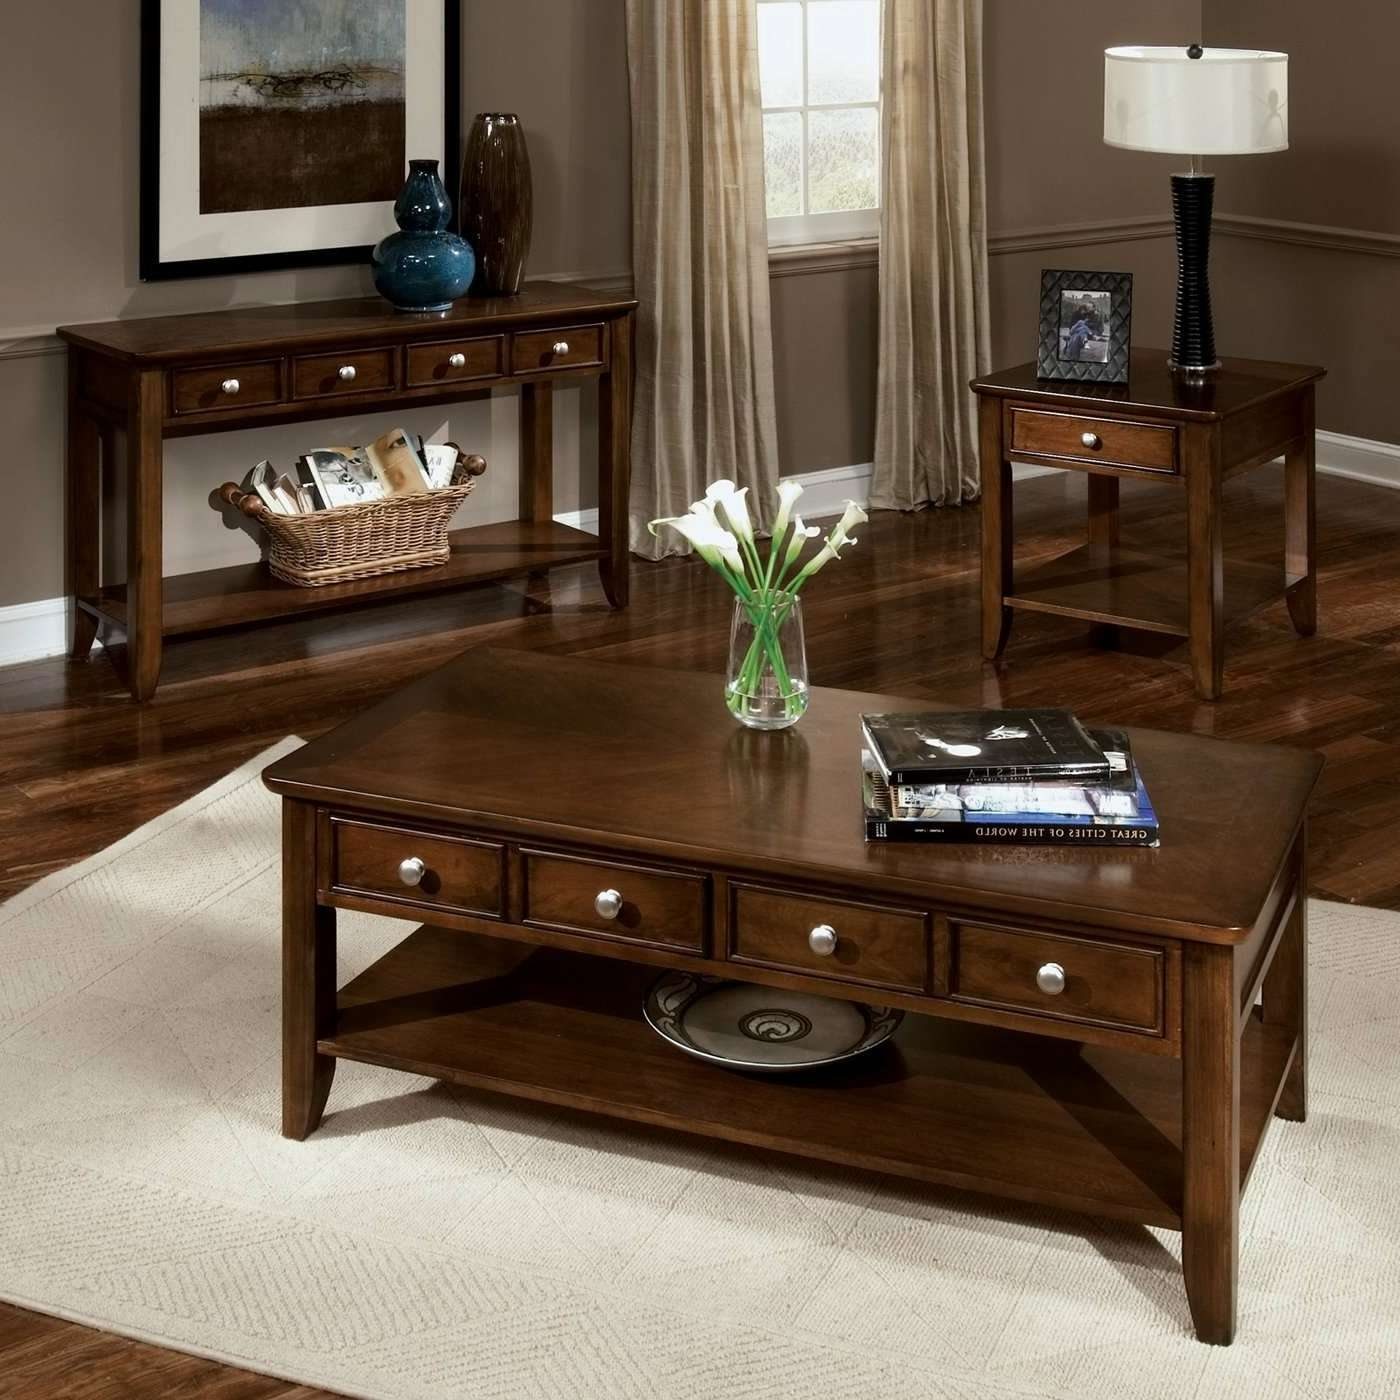 Most Recently Released Big Black Coffee Tables Inside Coffee Table : Amazing Oval Coffee Table Black Coffee Table Sets (View 15 of 20)